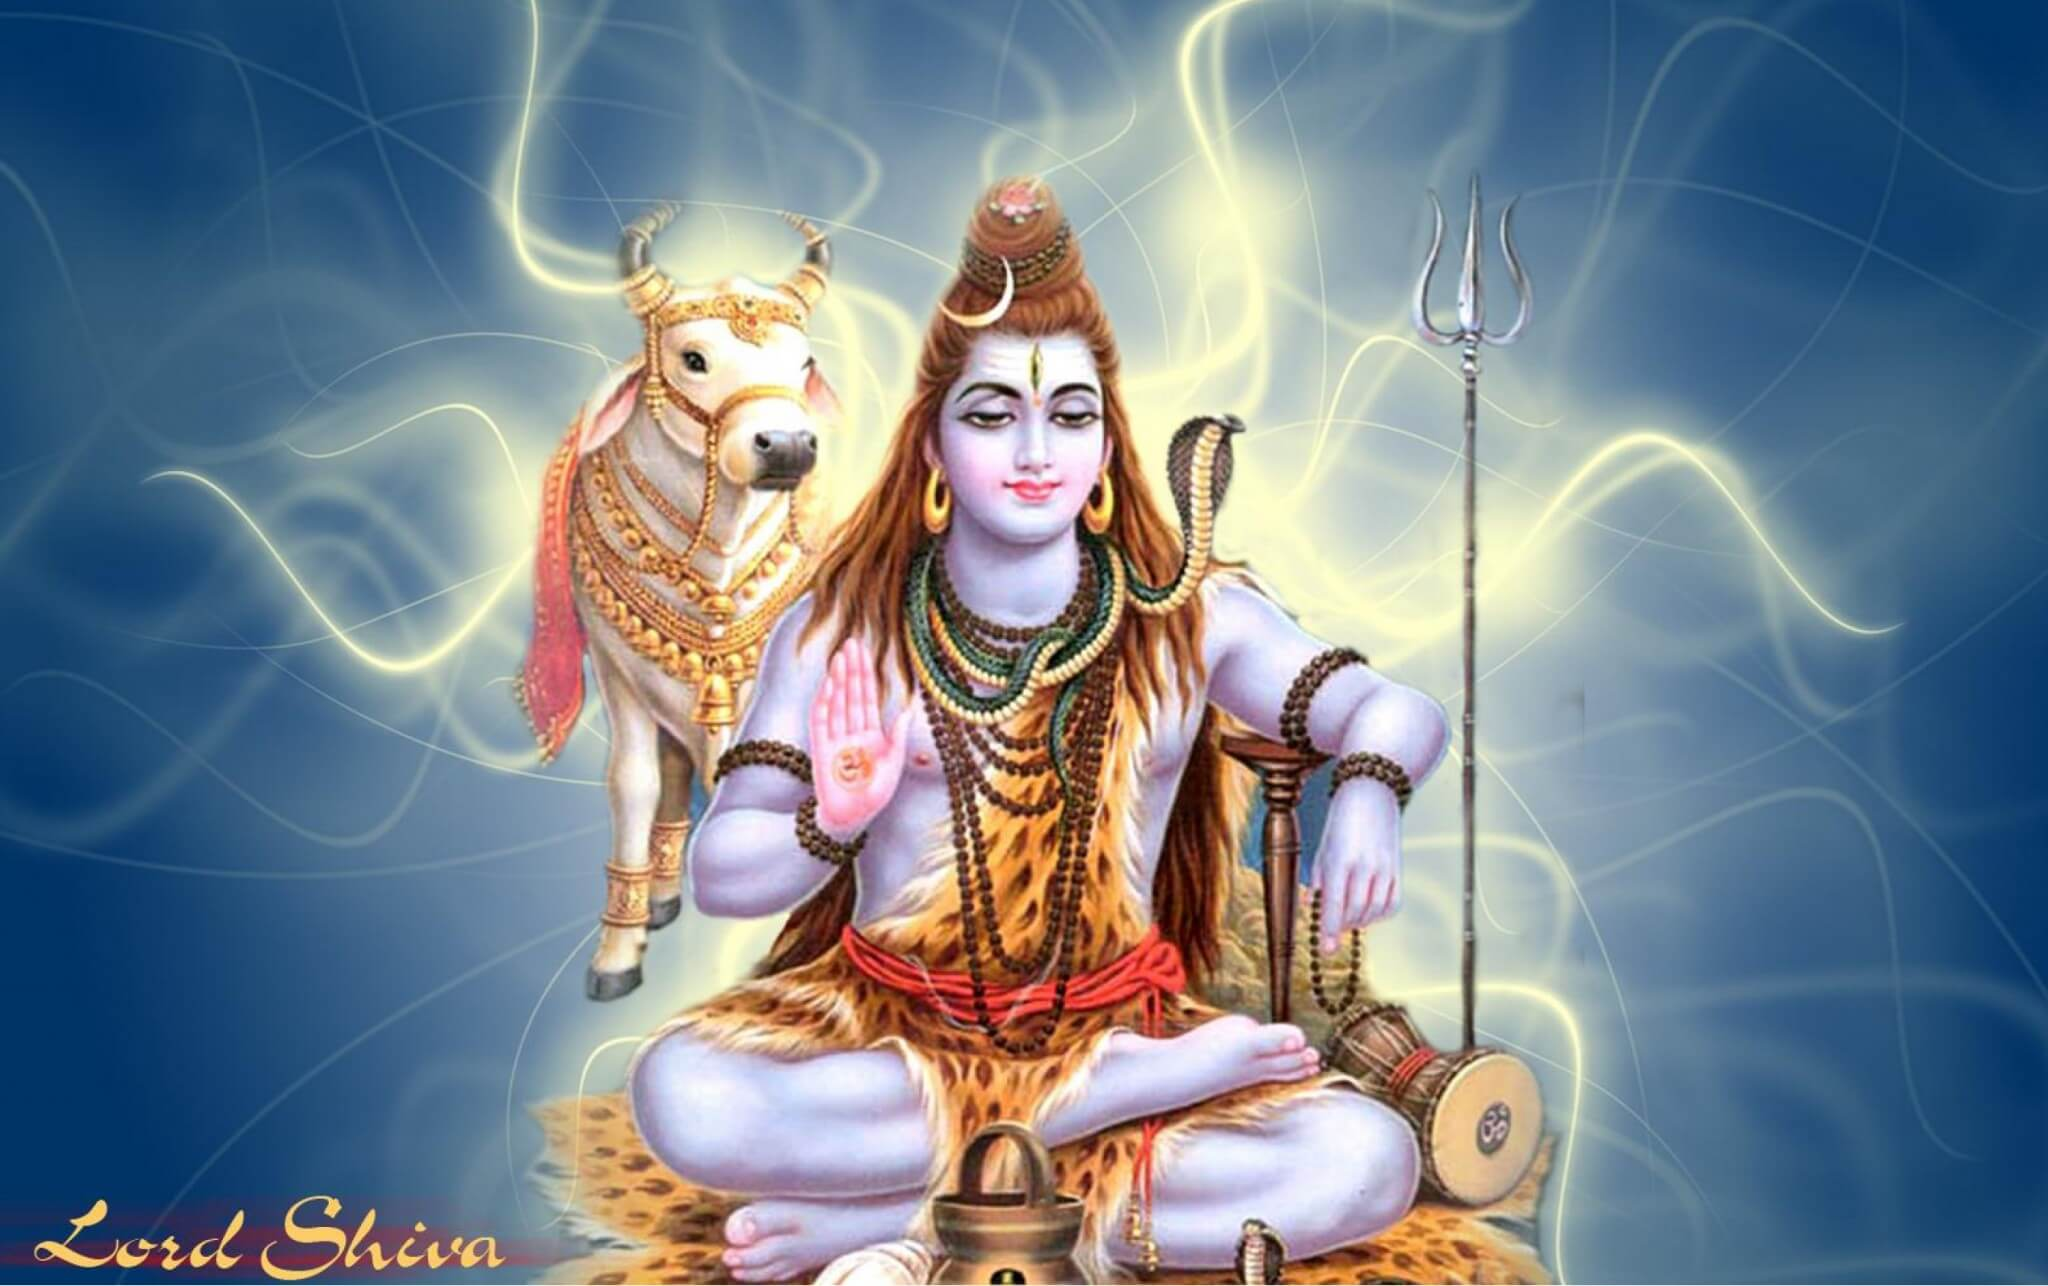 Lord Shiva Images भगवान् शिवजी के चित्र (Large Size) (8)